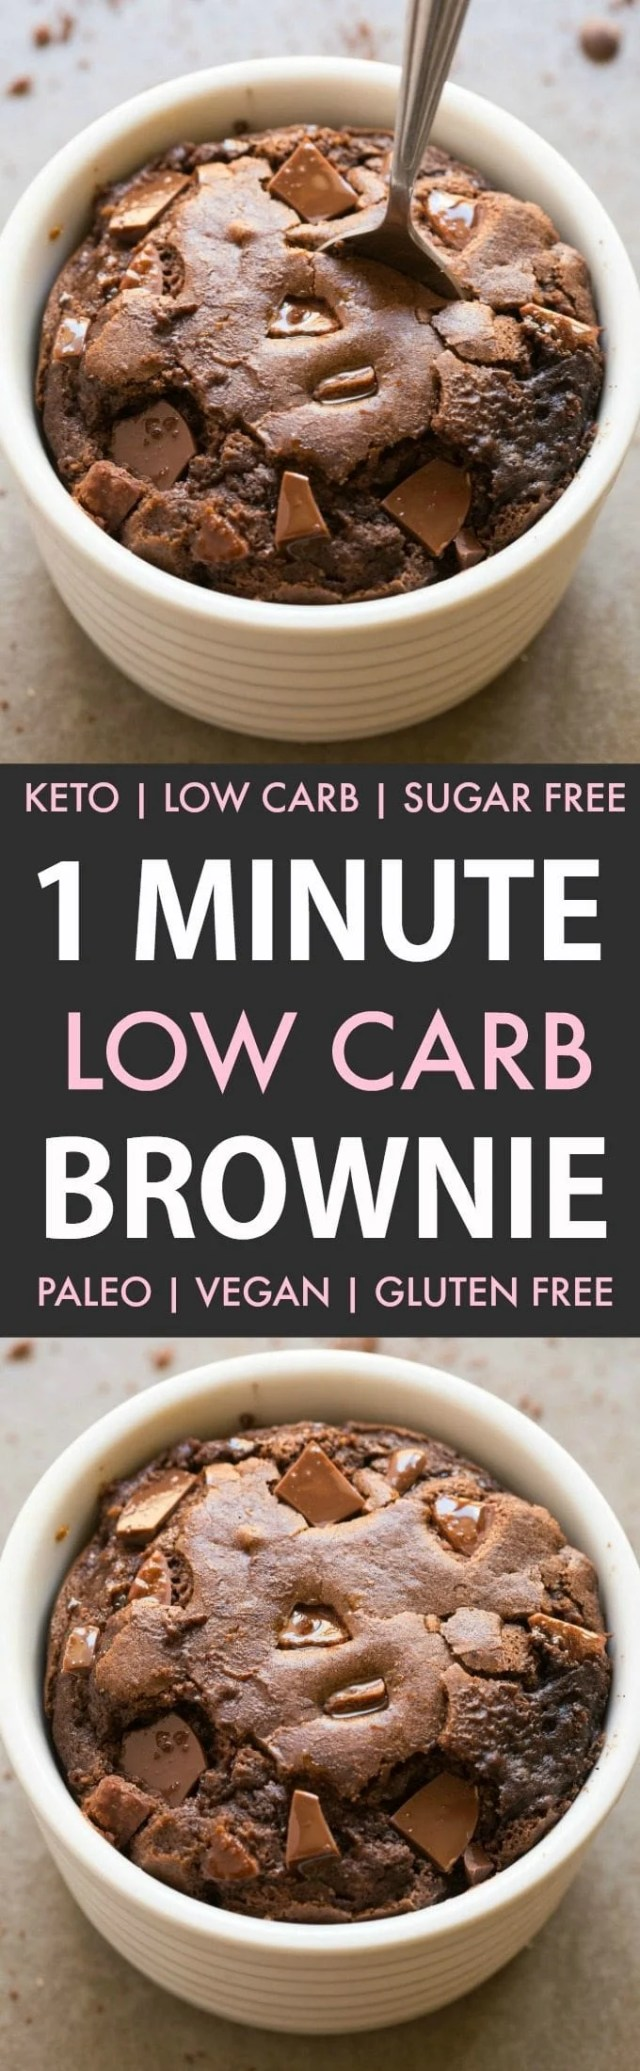 Healthy 1 Minute Low Carb Chocolate Brownie (Keto, Sugar Free, Paleo, Vegan, Gluten Free)- An easy recipe for a gooey and fudgy brownie mug cake ready in a minute or with an oven option too- NO grains and NO sugar! #ketodessert #keto #paleo #vegan #dairyfree #sugarfree | Recipe on thebigmansworld.com